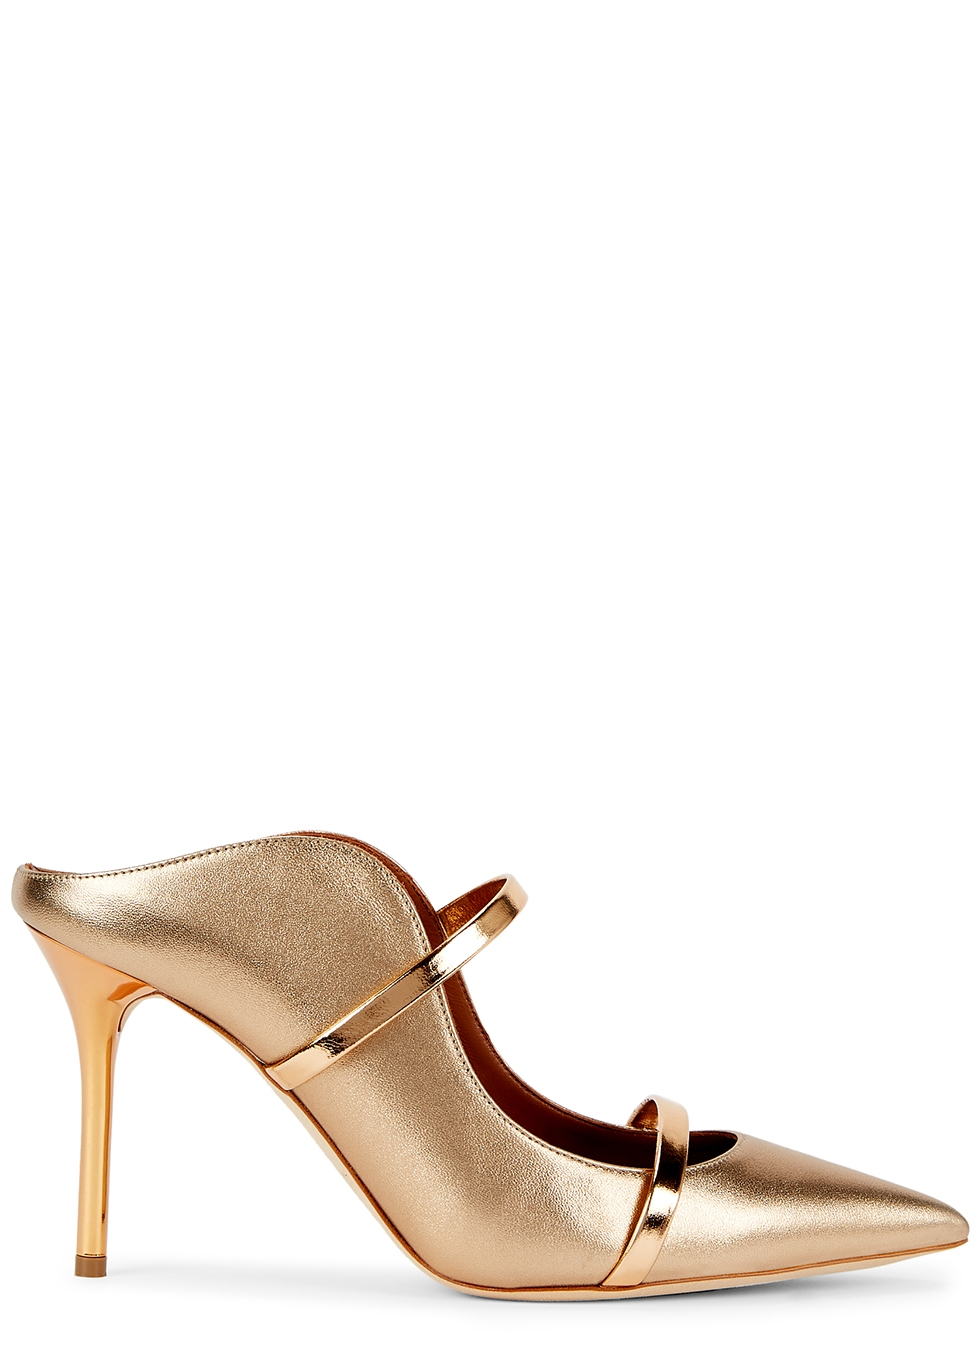 Maureen 85 gold leather mules